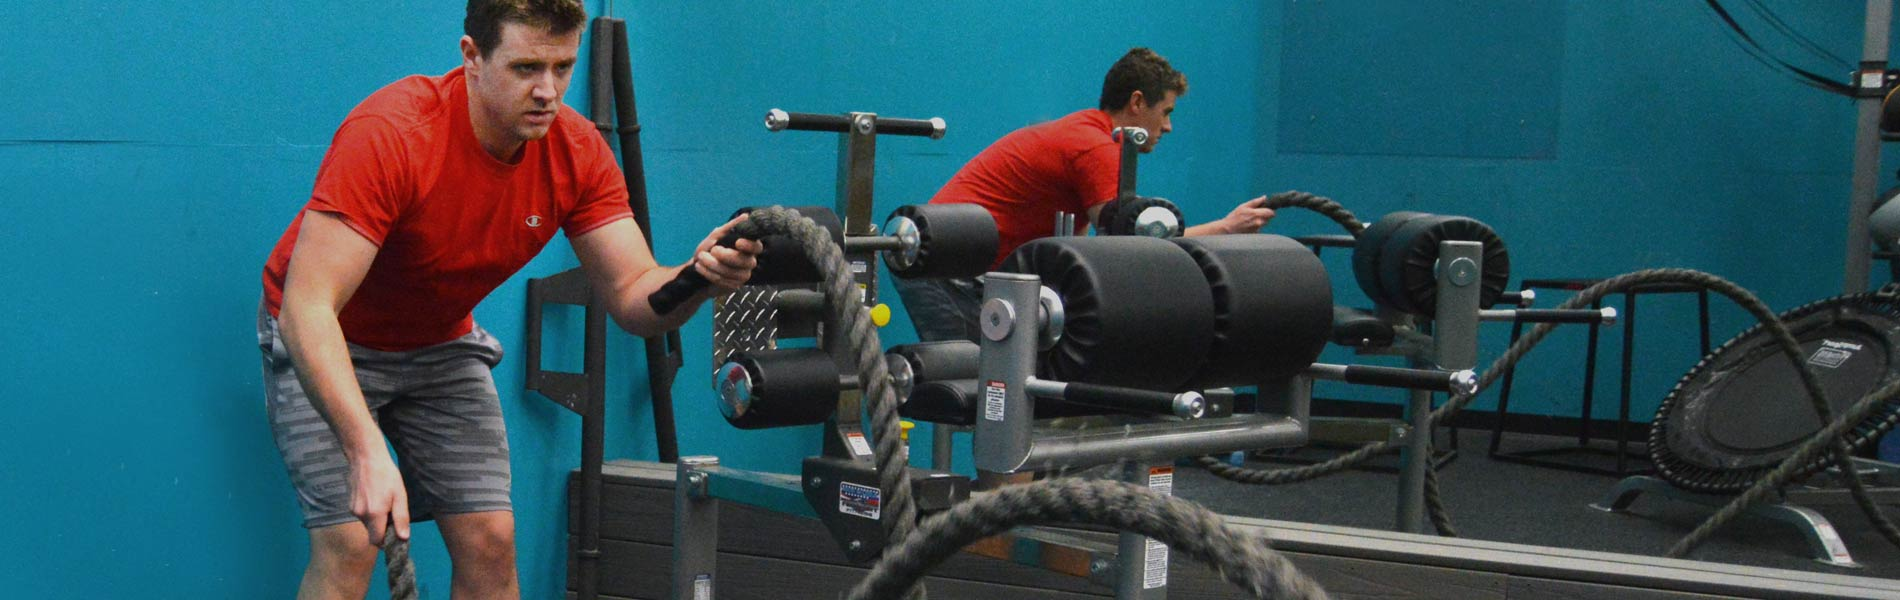 slider-fitness-crossfit